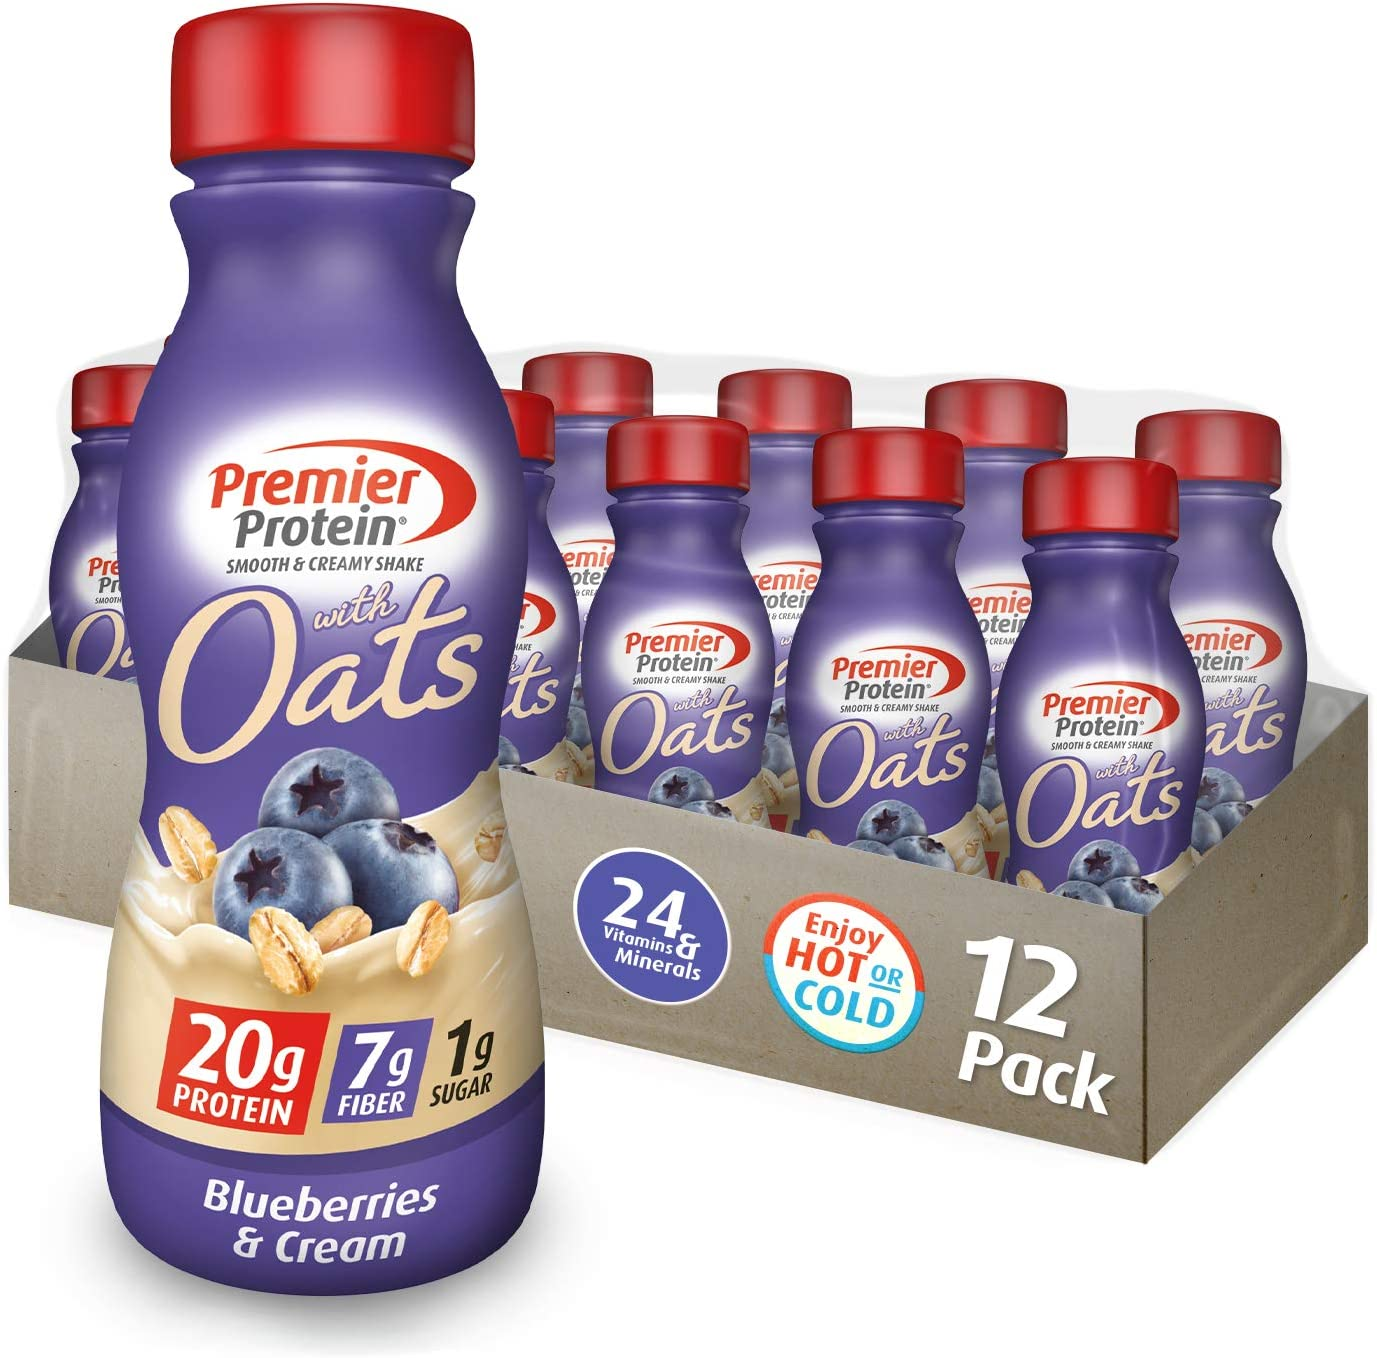 Premier Protein 20g Protein Shake with Oats, Blueberries & Cream, 11.5 Fl Oz Bottle, (12Count)